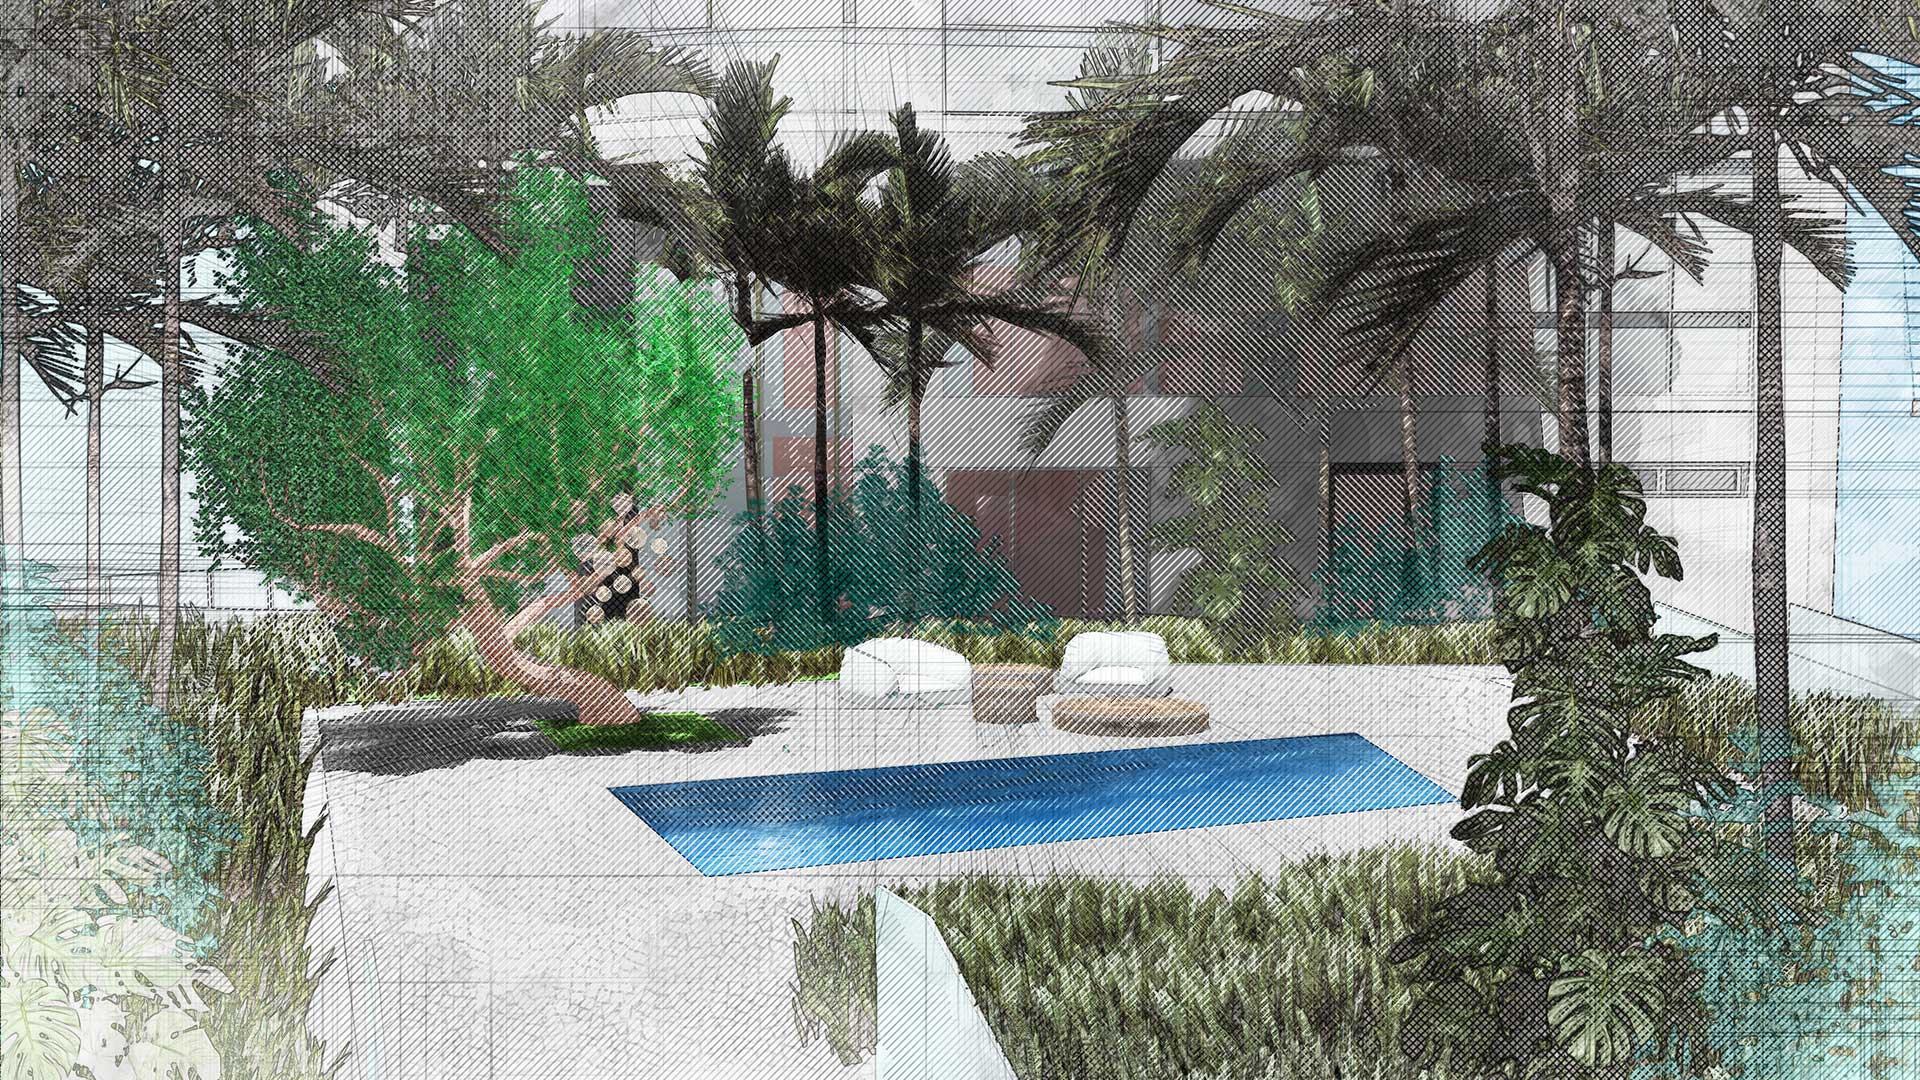 Sketching of landscape design of 7140 Collins Garden showing plants and trees